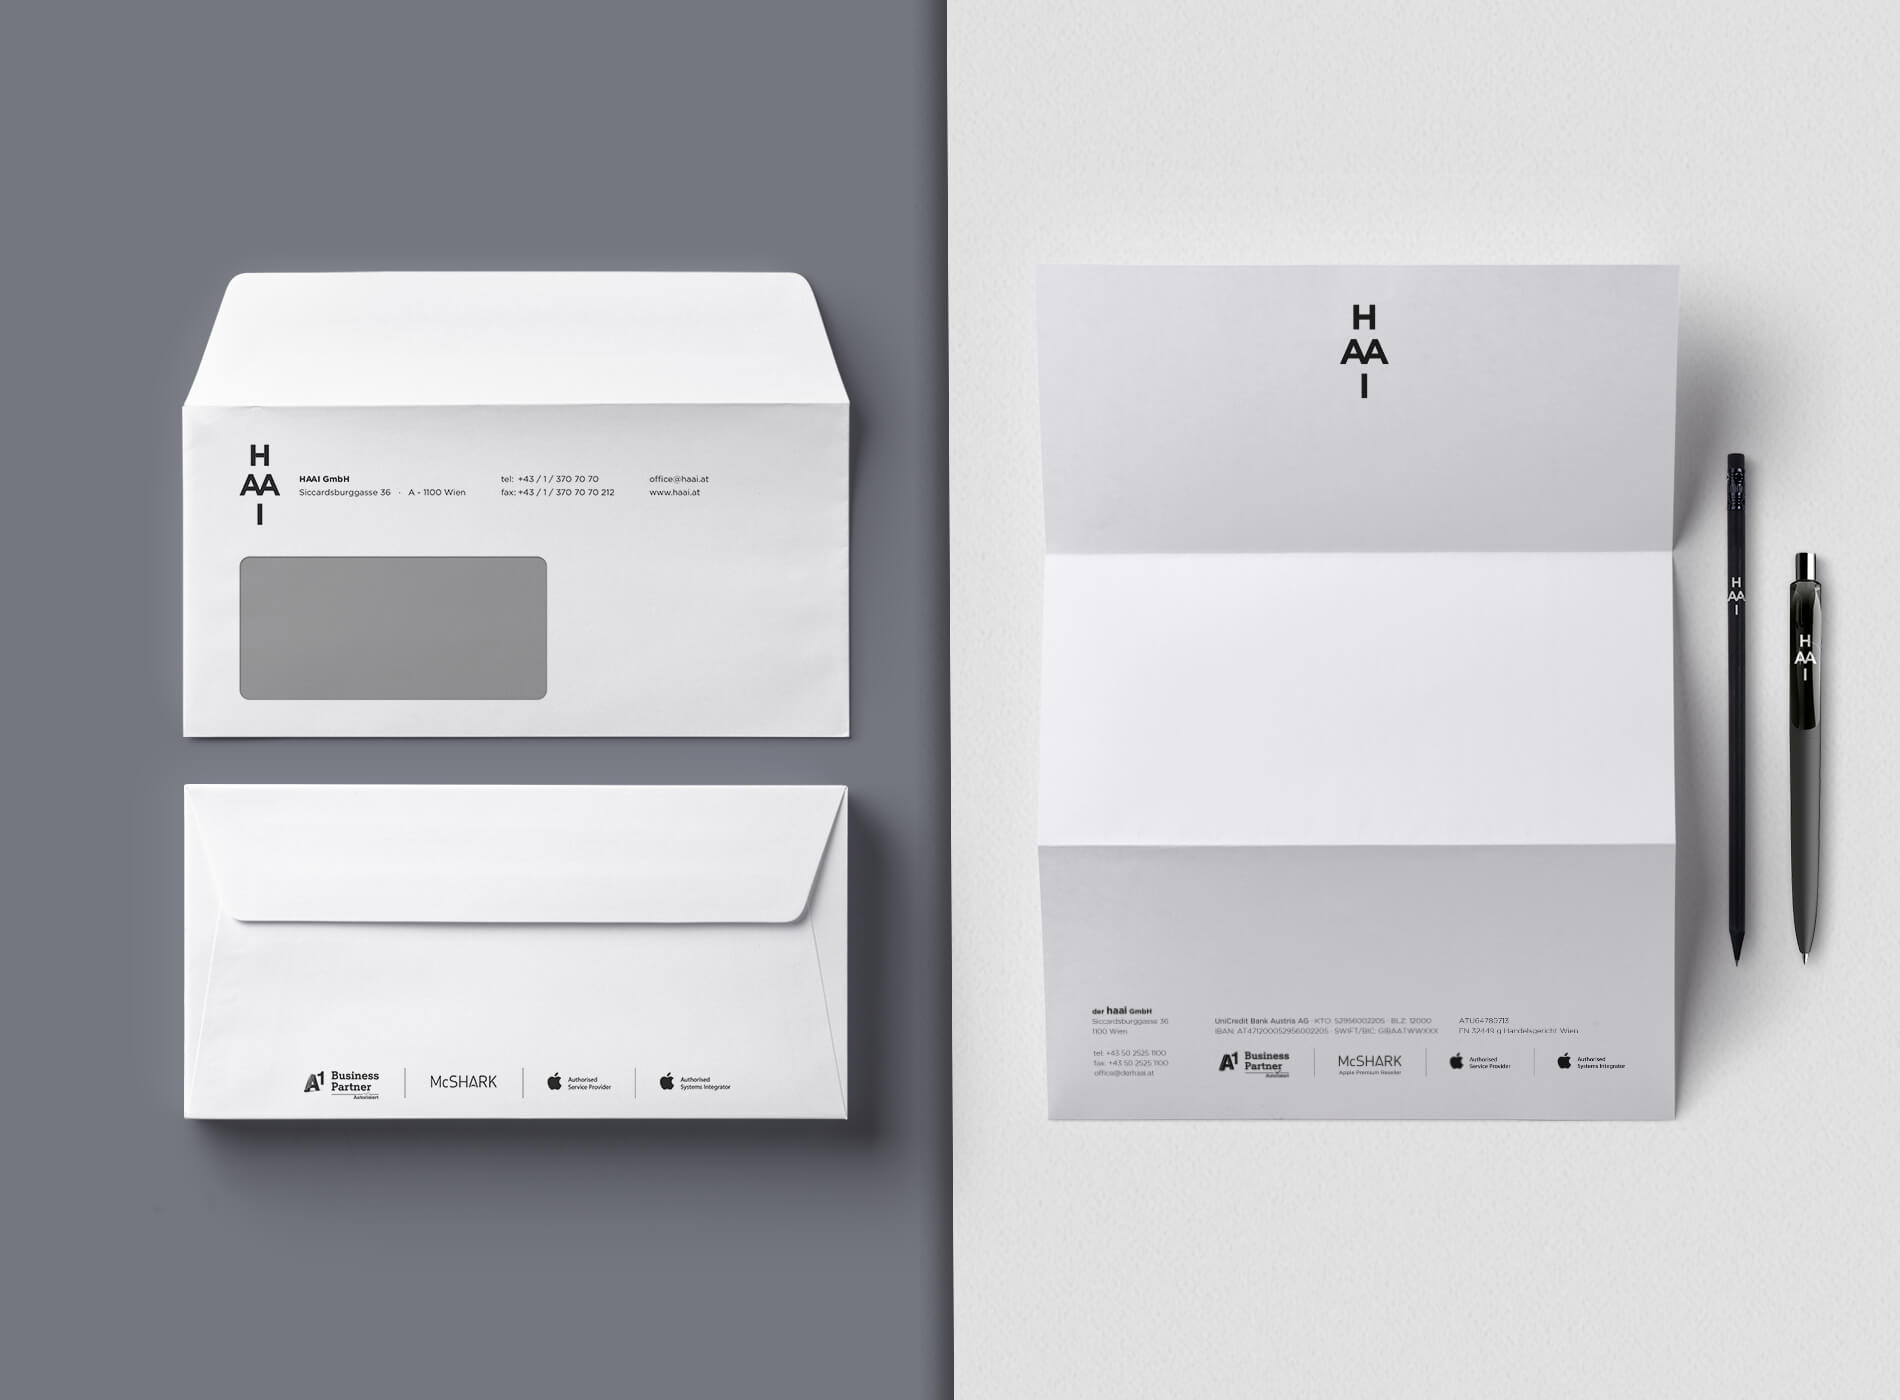 HAAI Corporate Identity Grafikdesign